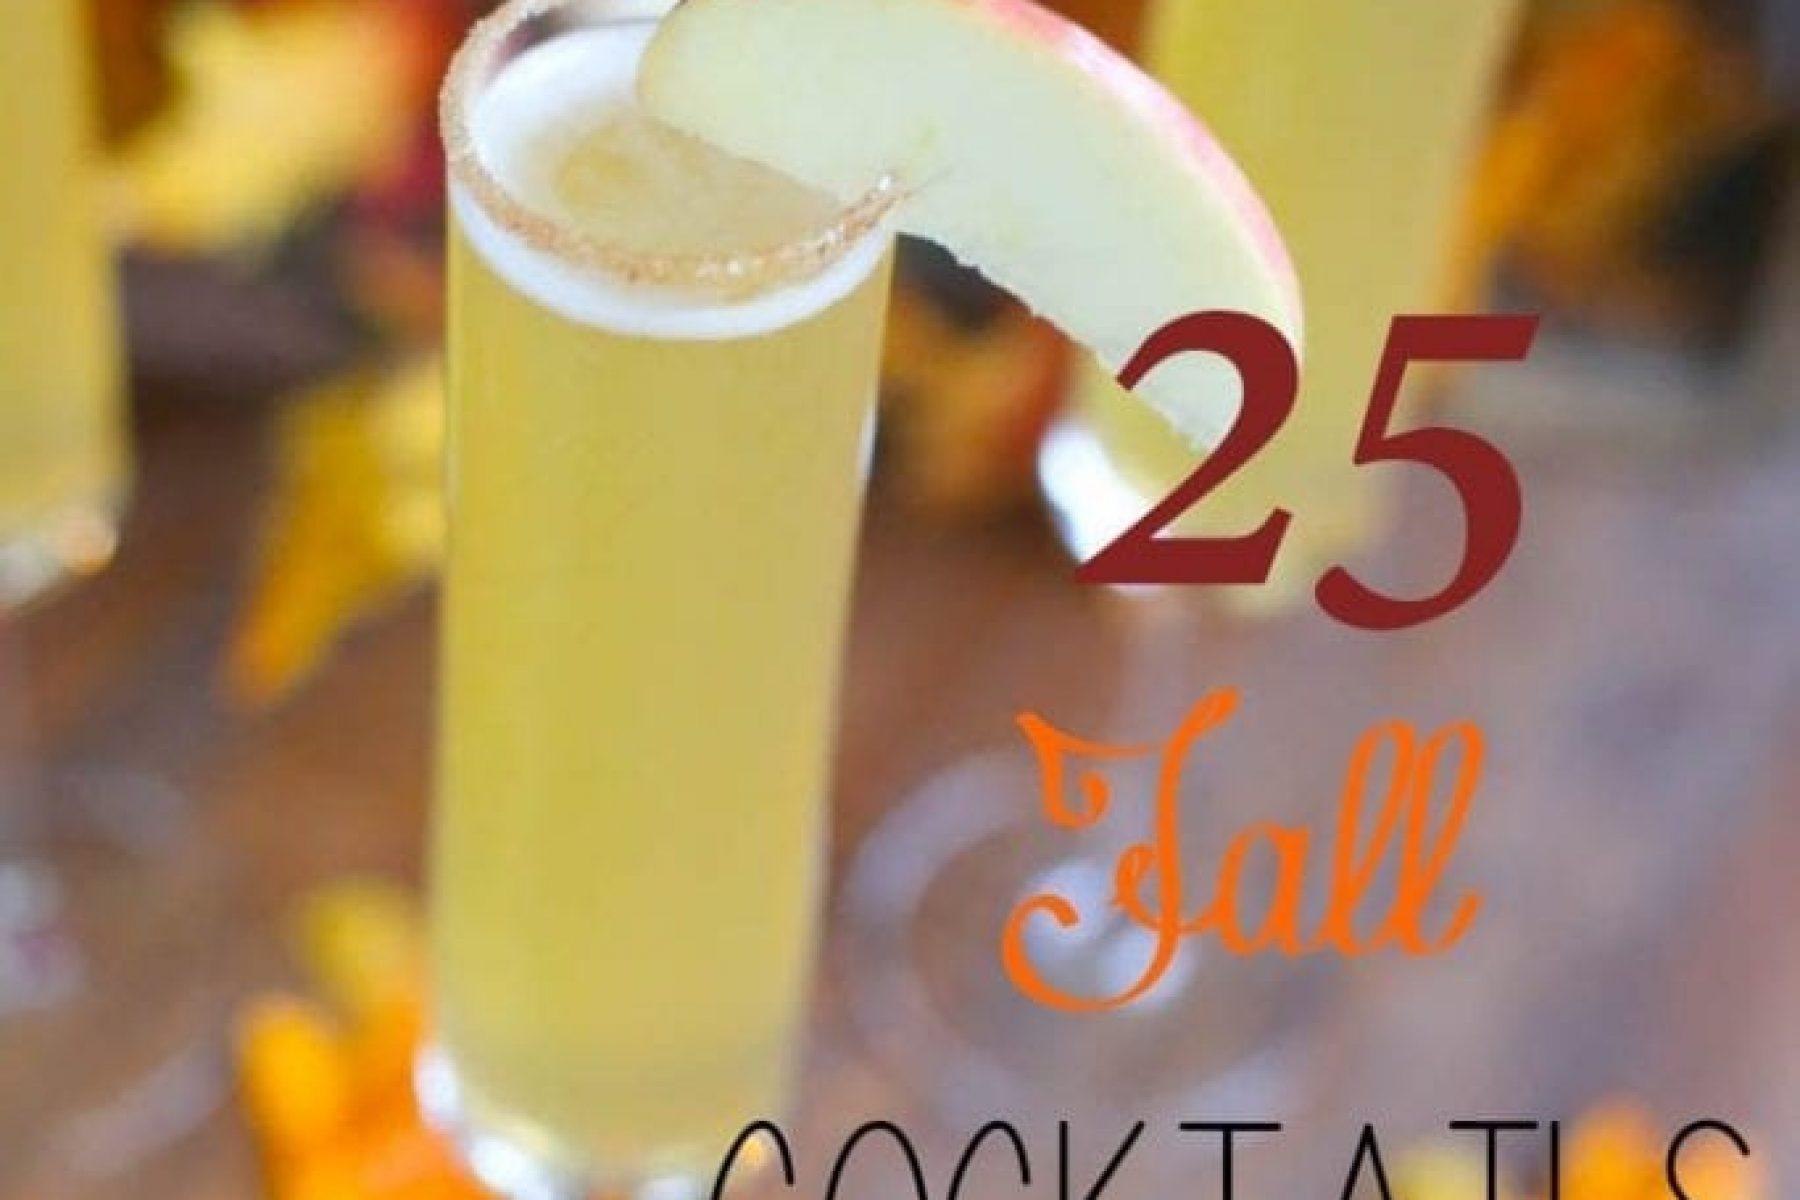 Salted-Apple-Cider-Bellini-Fall-Cocktail-Afternoon-Espresso copy